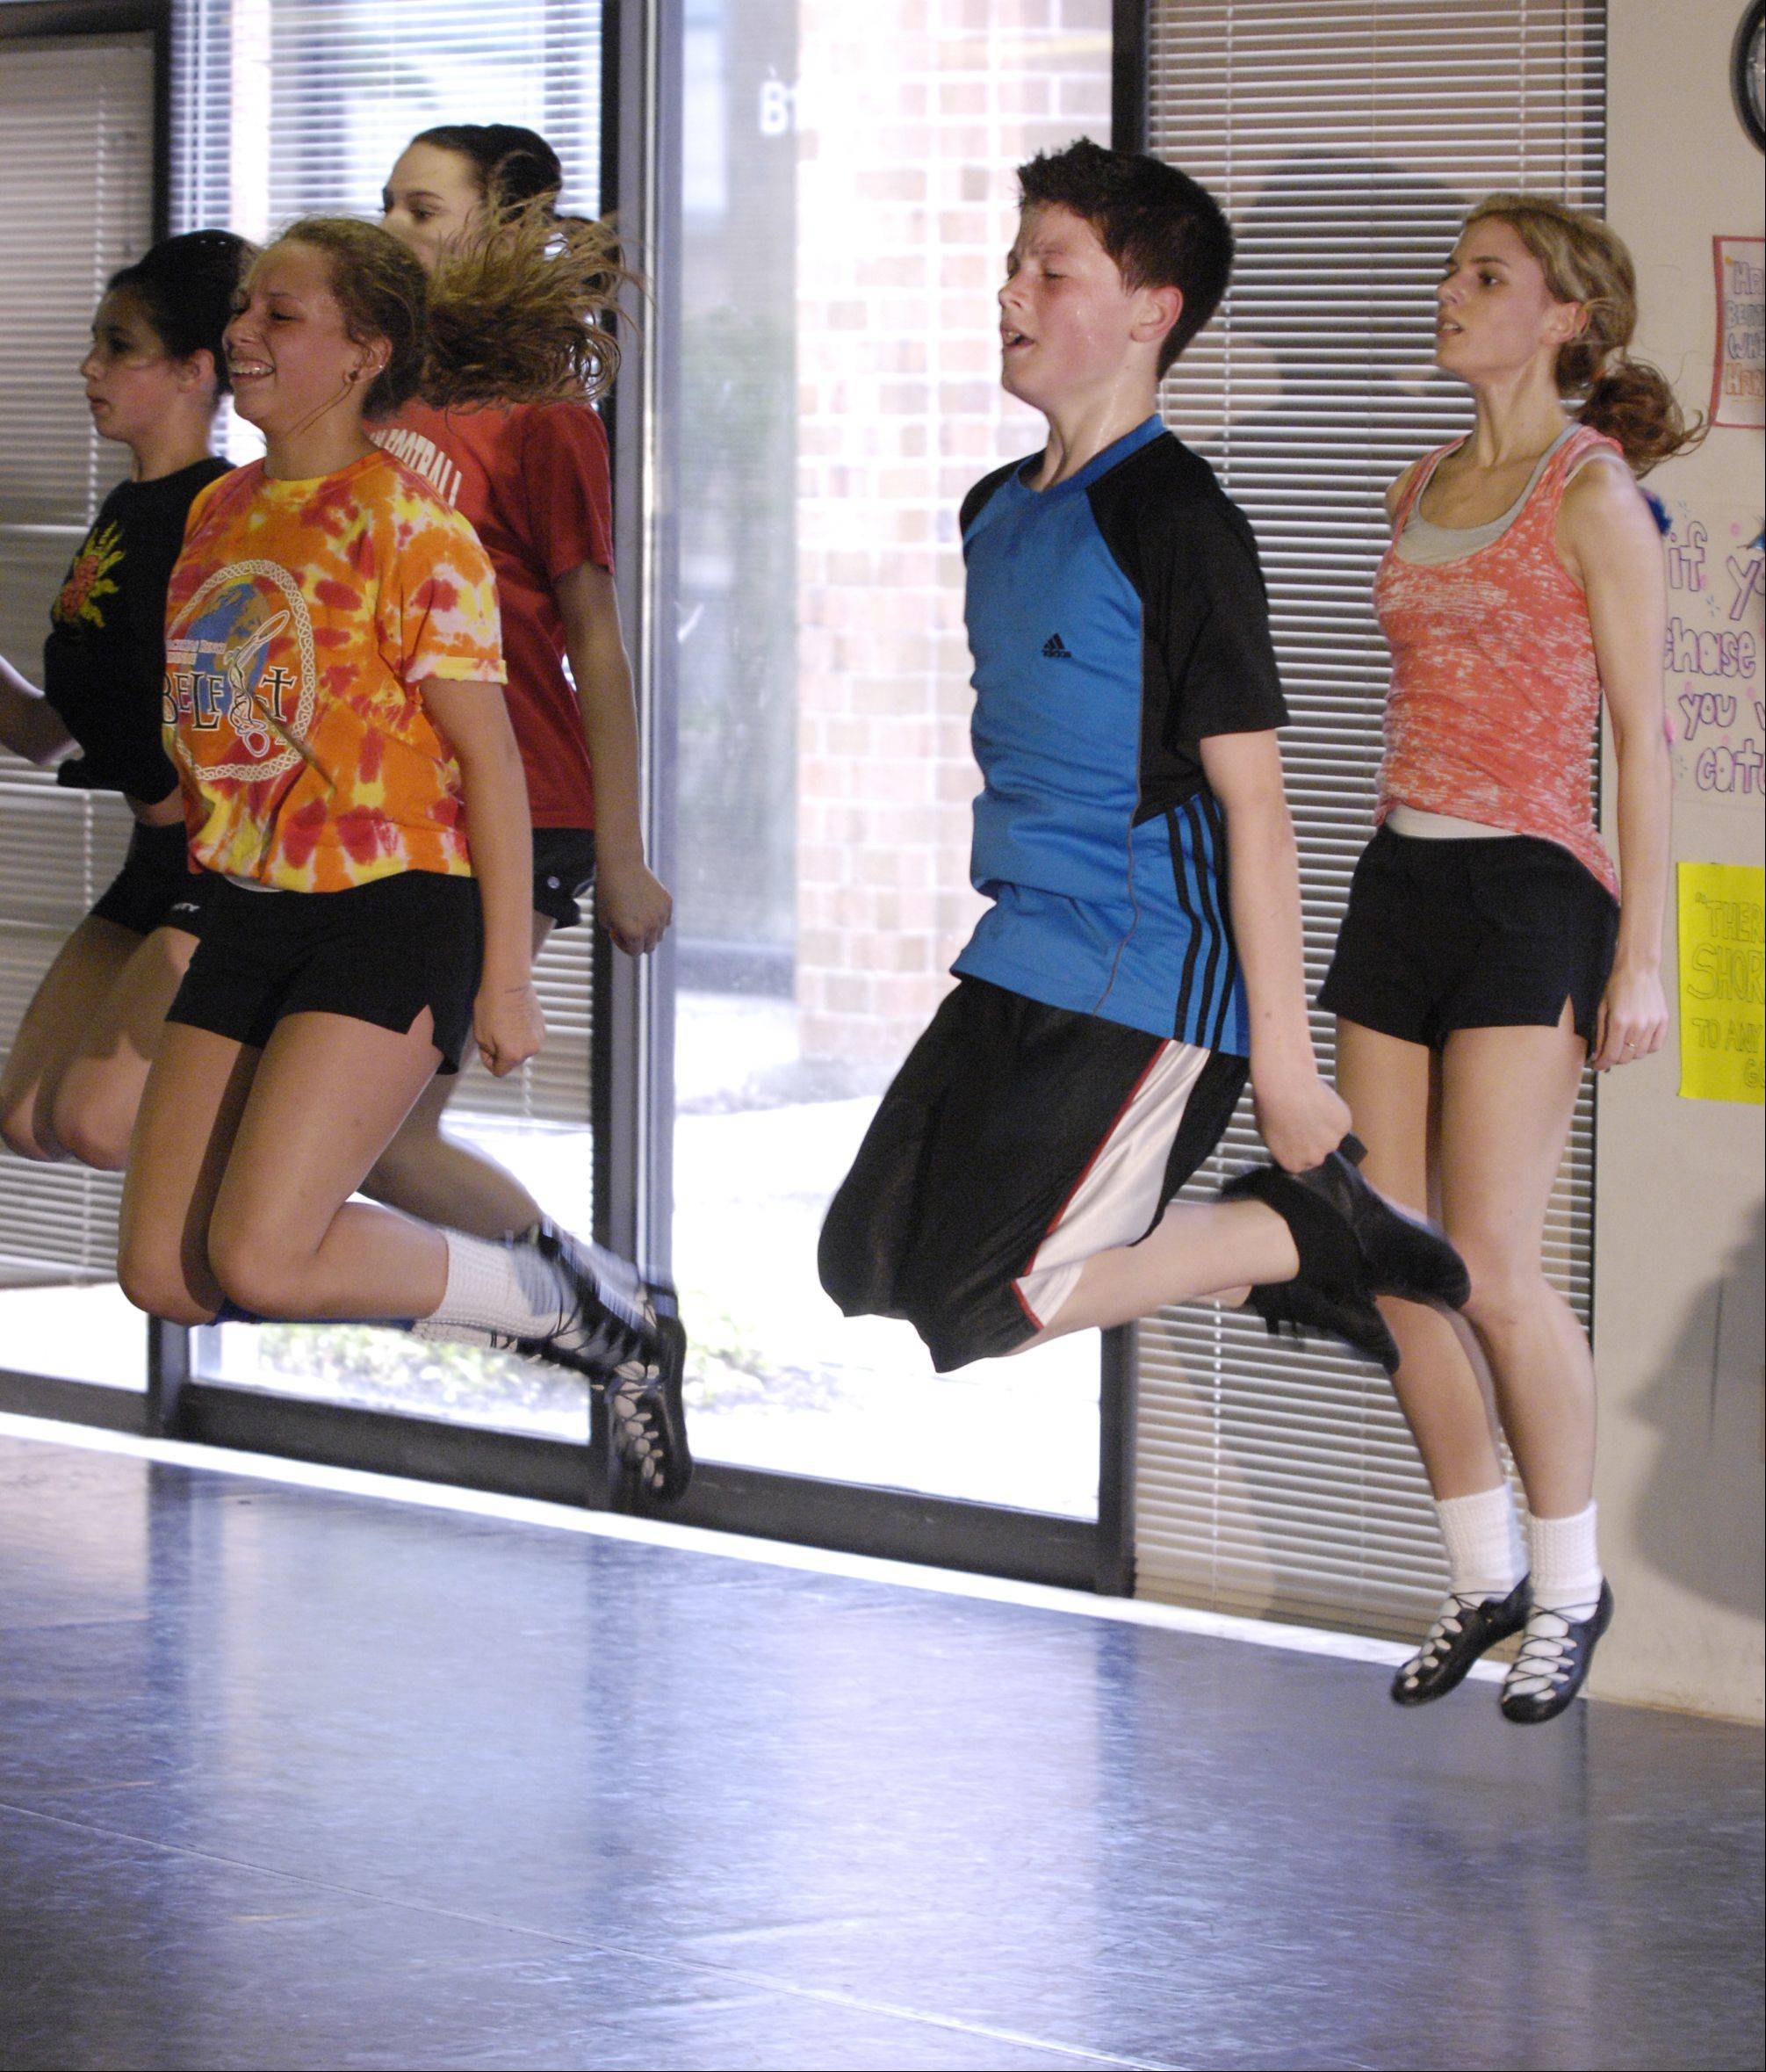 Peter Dziak, 14, of Villa Park practices with fellow members of the Trinity Irish Dancers in Elmhurst. Dziak successfully defended his world title to secure his second gold medal at the World Irish Dancing Championships in Belfast, Ireland.